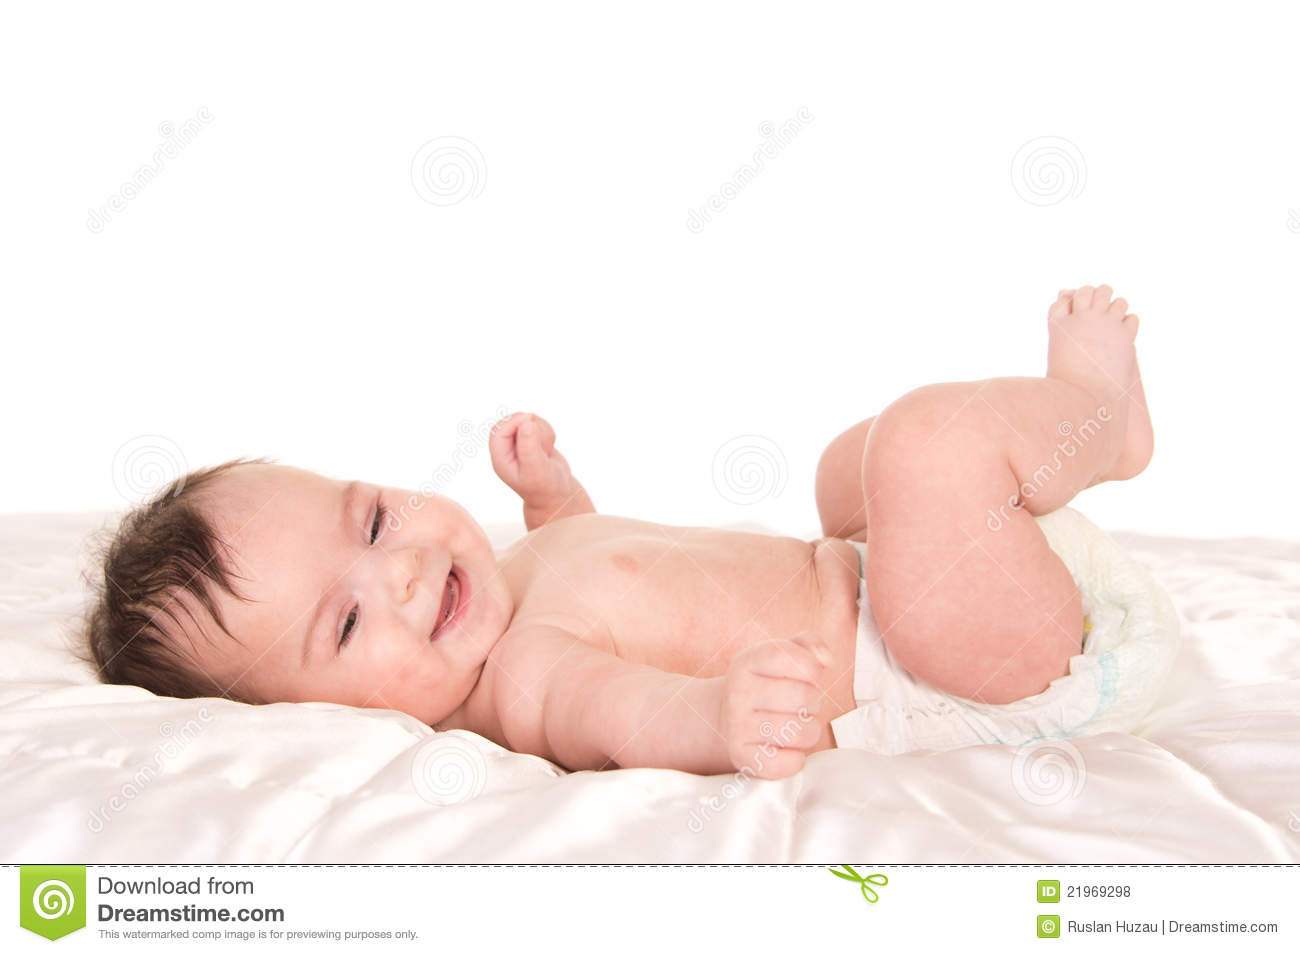 Baby in diapers stock photo. Image of infant, small, child ...